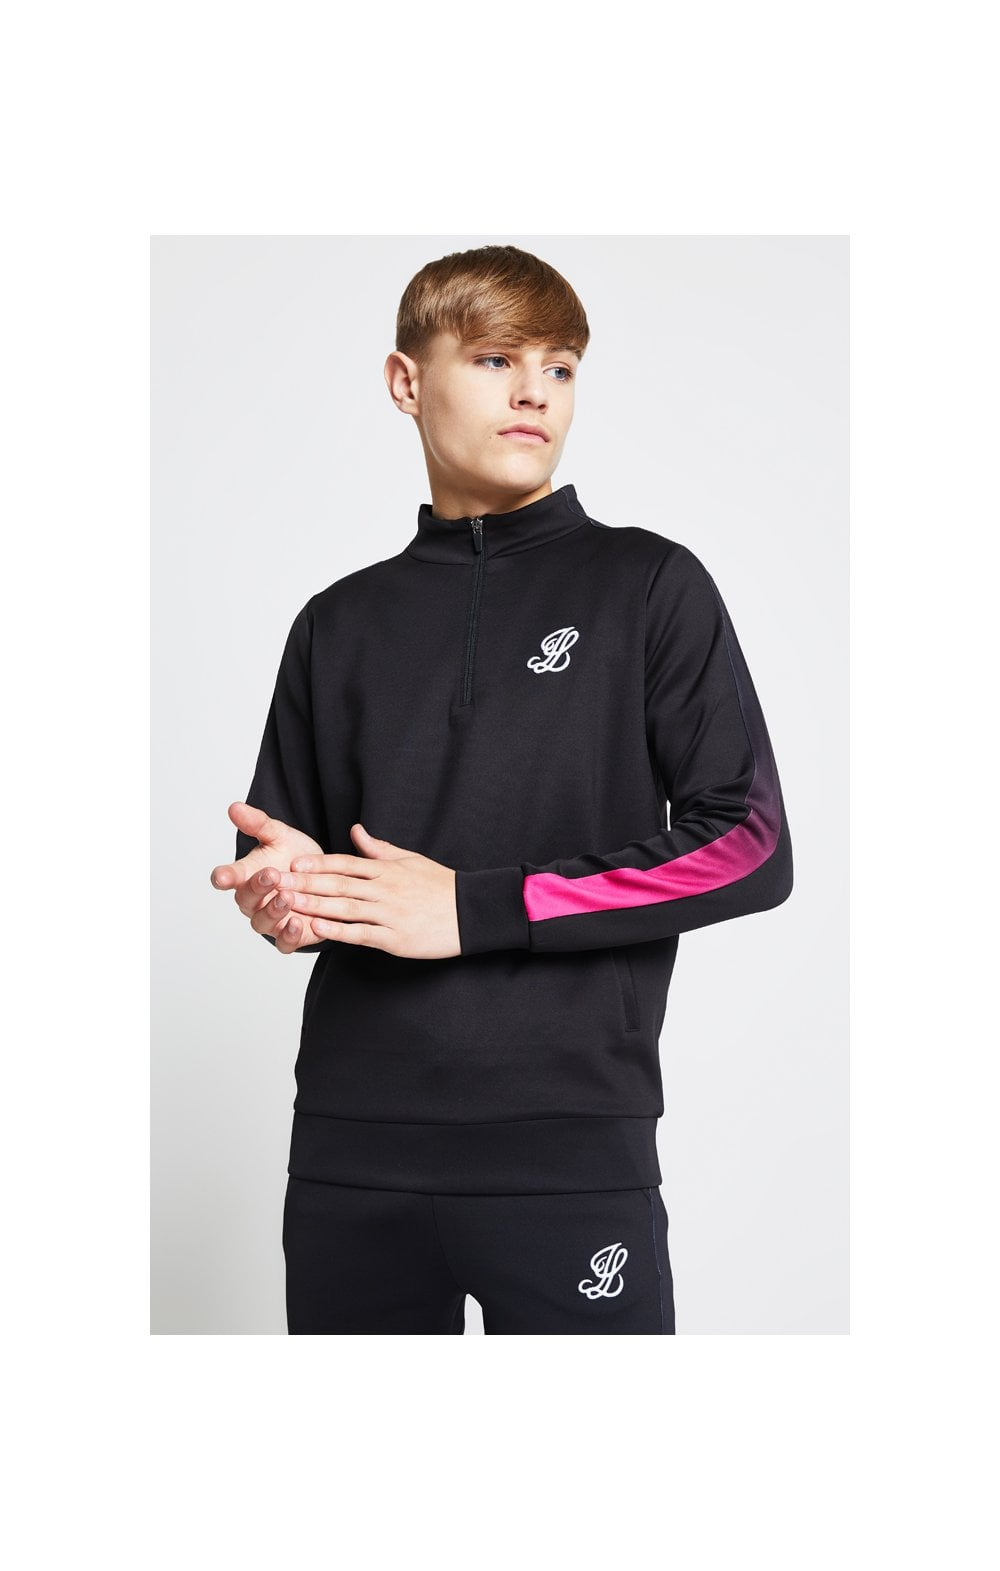 Load image into Gallery viewer, Illusive London Fade Panel Funnel Neck 1/4 Zip Hoodie - Black & Pink (1)